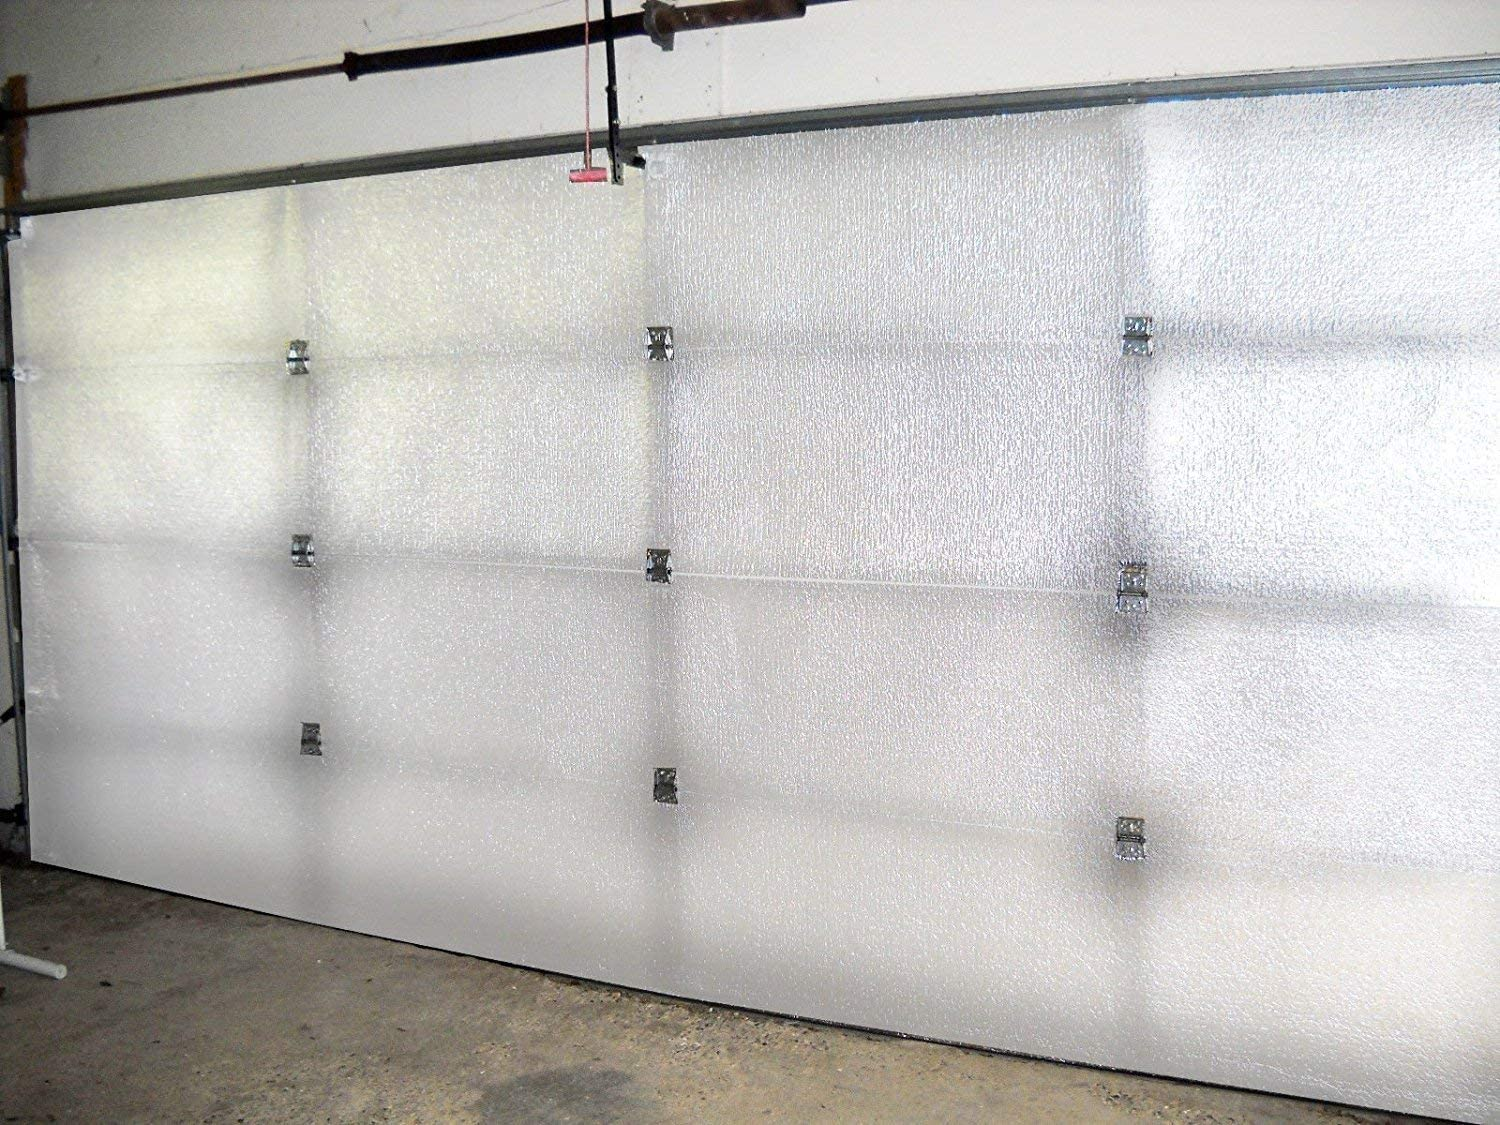 NASA TECH Garage Door Insulation Kit